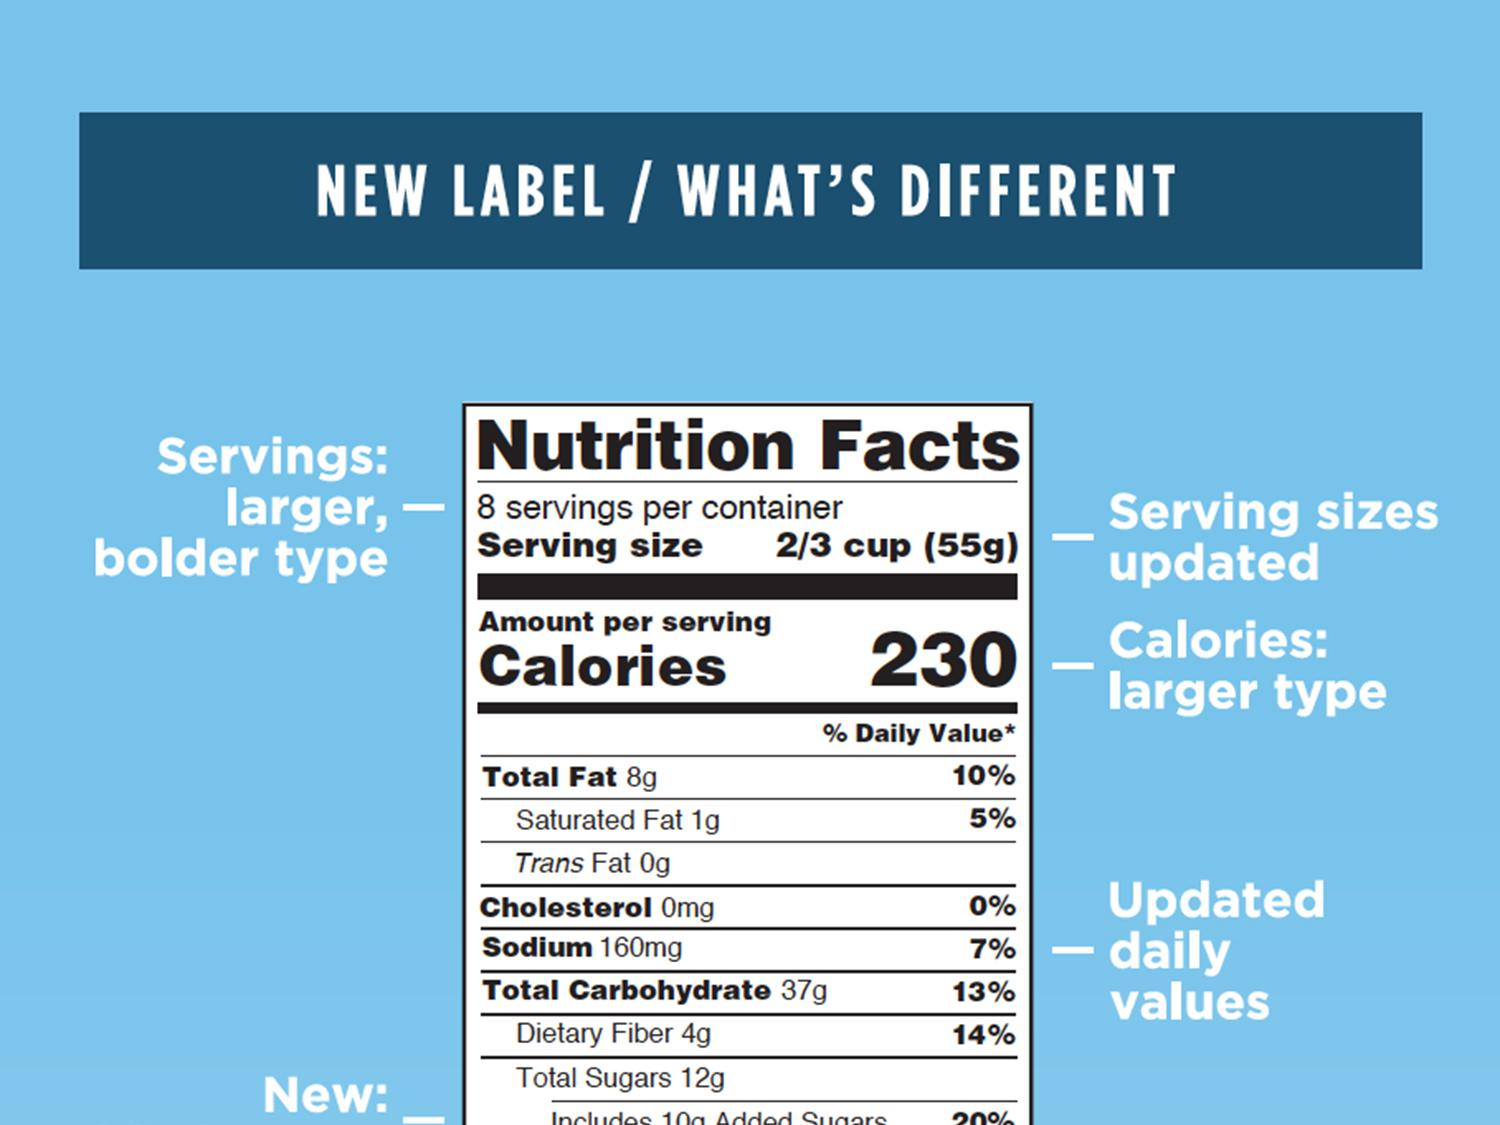 The updated U.S. Food and Drug Administration's Nutrition Facts label highlights added sugars, as well as serving sizes and calories. The new label will be seen on packaged foods starting in 2018. (Illustration courtesy of the U.S. Food and Drug Administration)